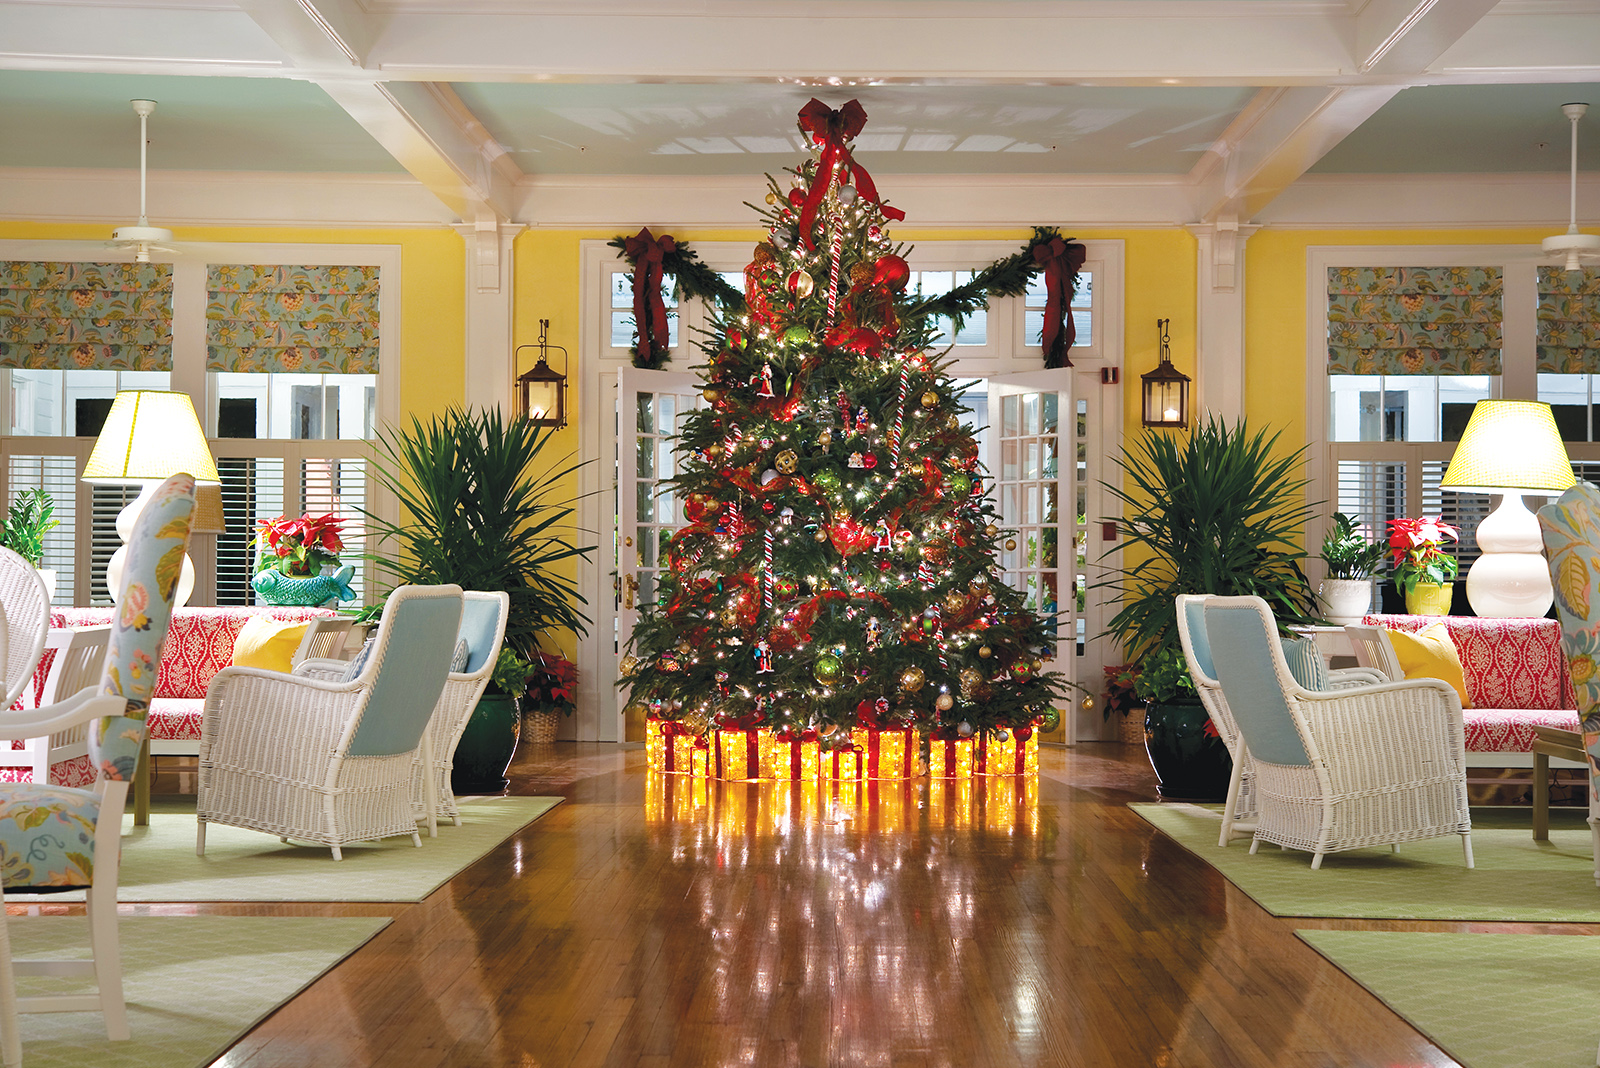 Large lit-up decorated Christmas Tree in a sitting room